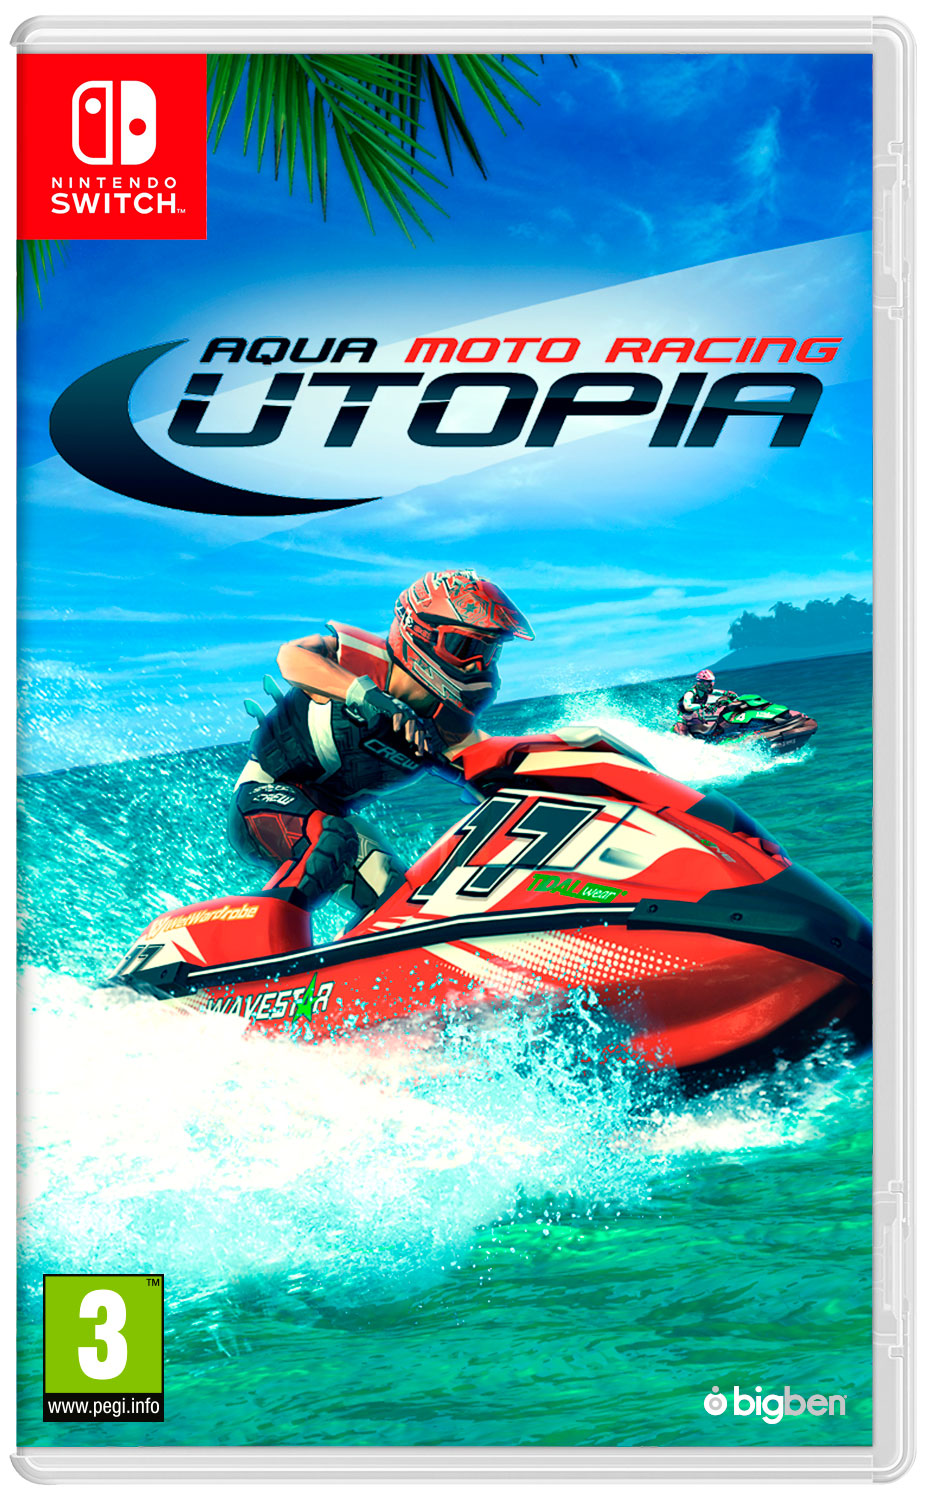 Snow Moto Racing Freedom y Aqua Moto Racing Utopia se anuncian para Nintendo Switch